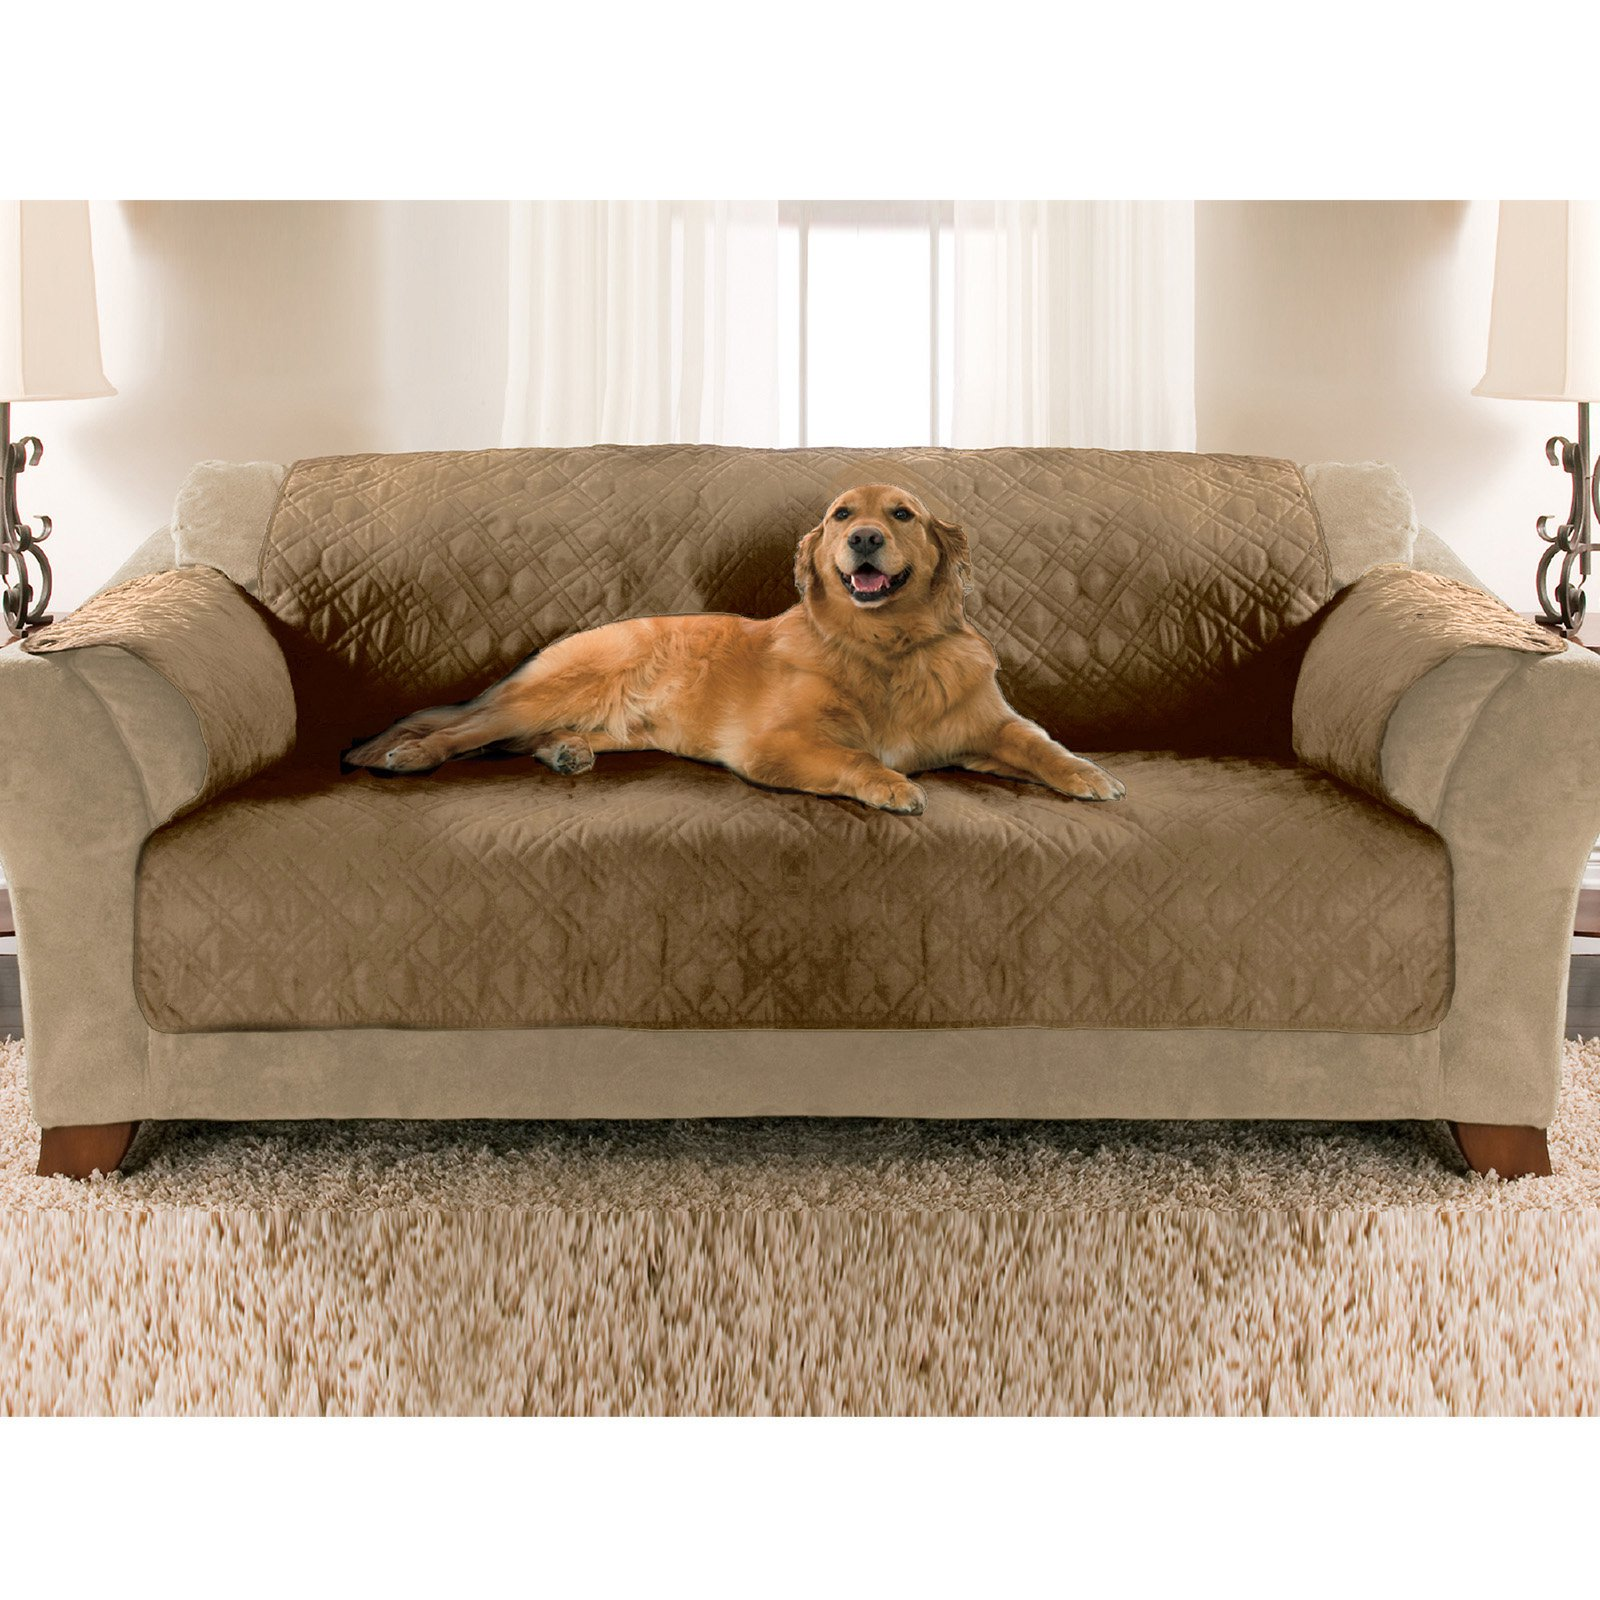 Paws & Claws Sofa Size Quilted Micro Suede Furniture Protector